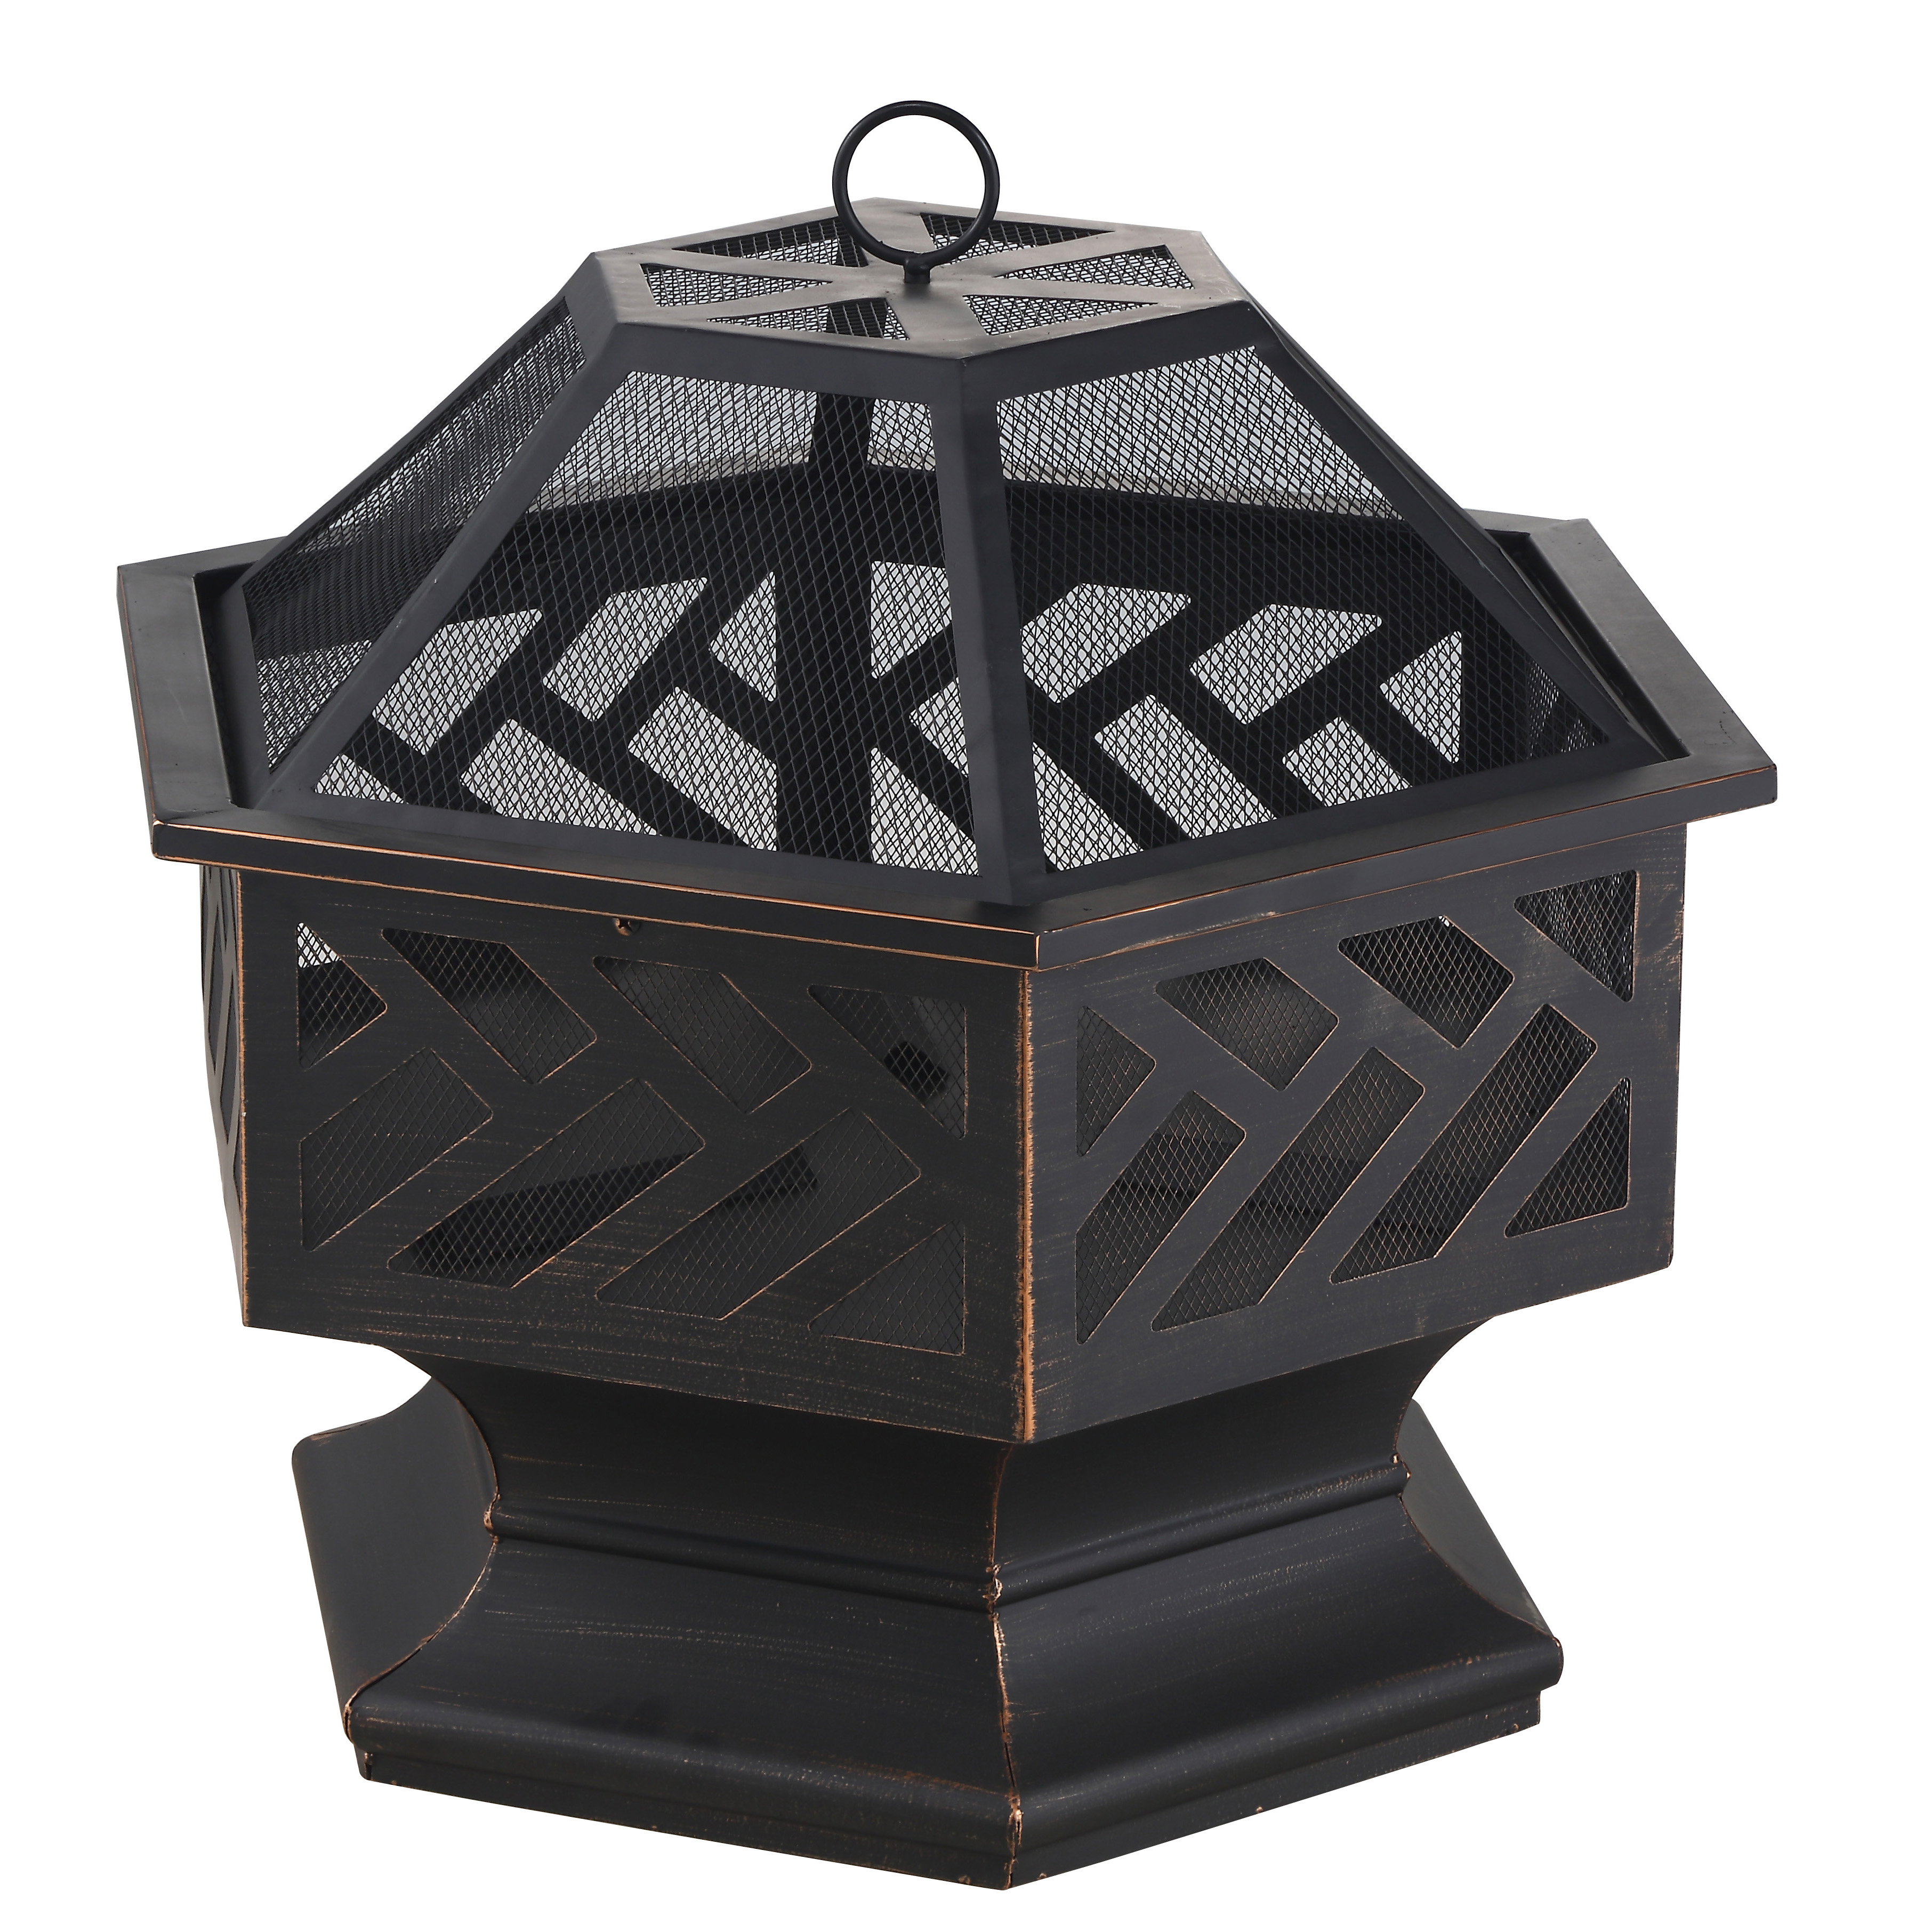 Chef Master WAD1576SP fire pit, outdoor